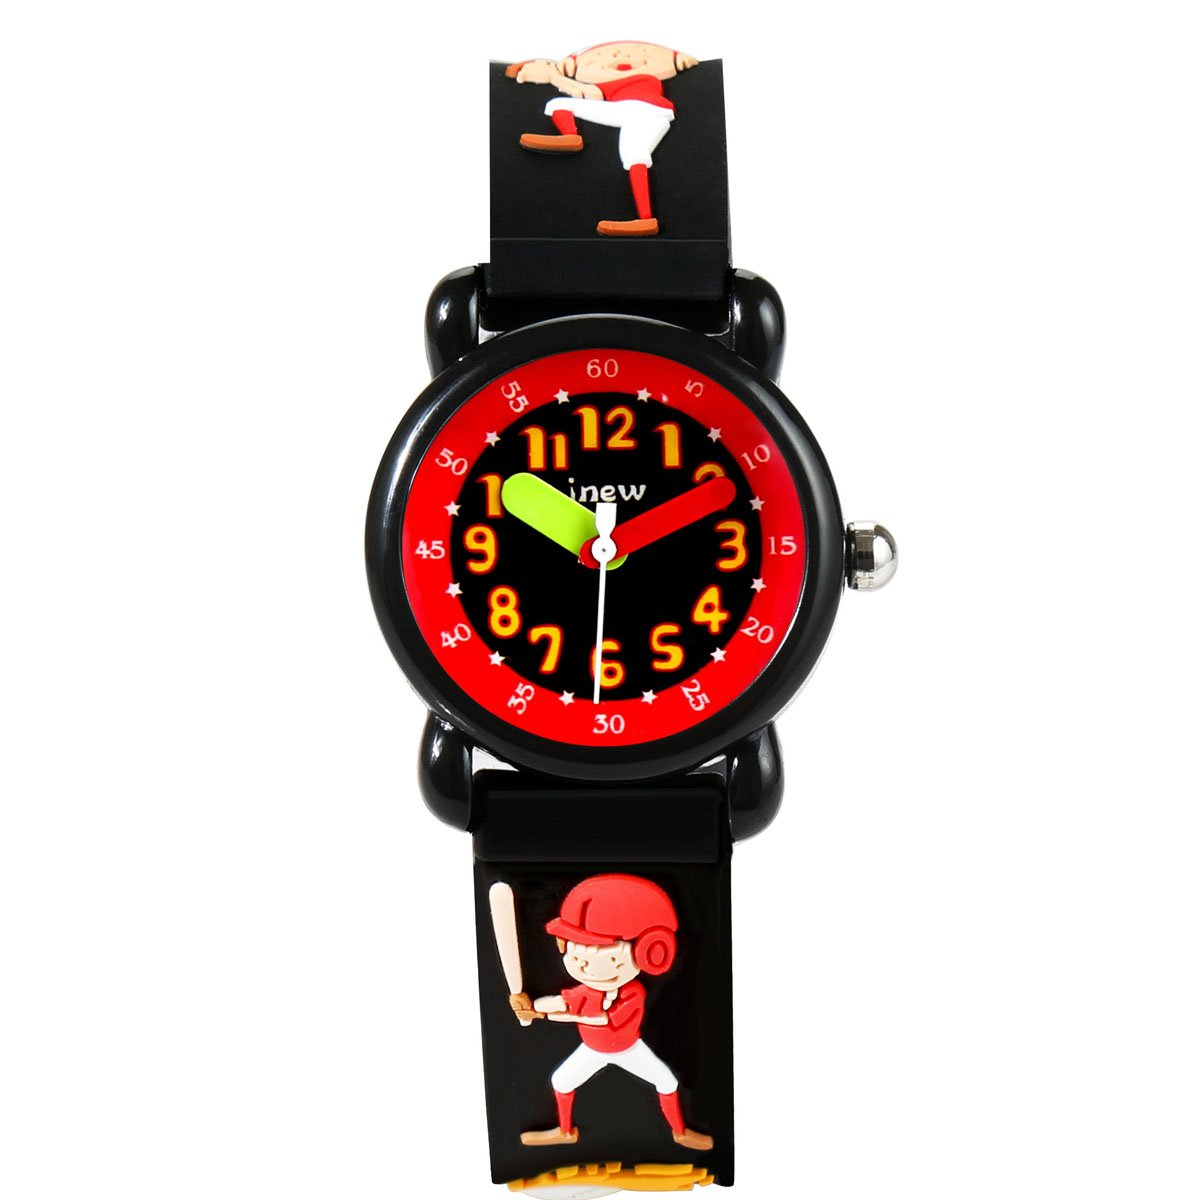 Kids Watch Baseball 3D Cartoon Waterproof Silicone Wrist Watches Fashion Analog Time Teacher Gift for Little Boys Black by PASNEW (Image #1)